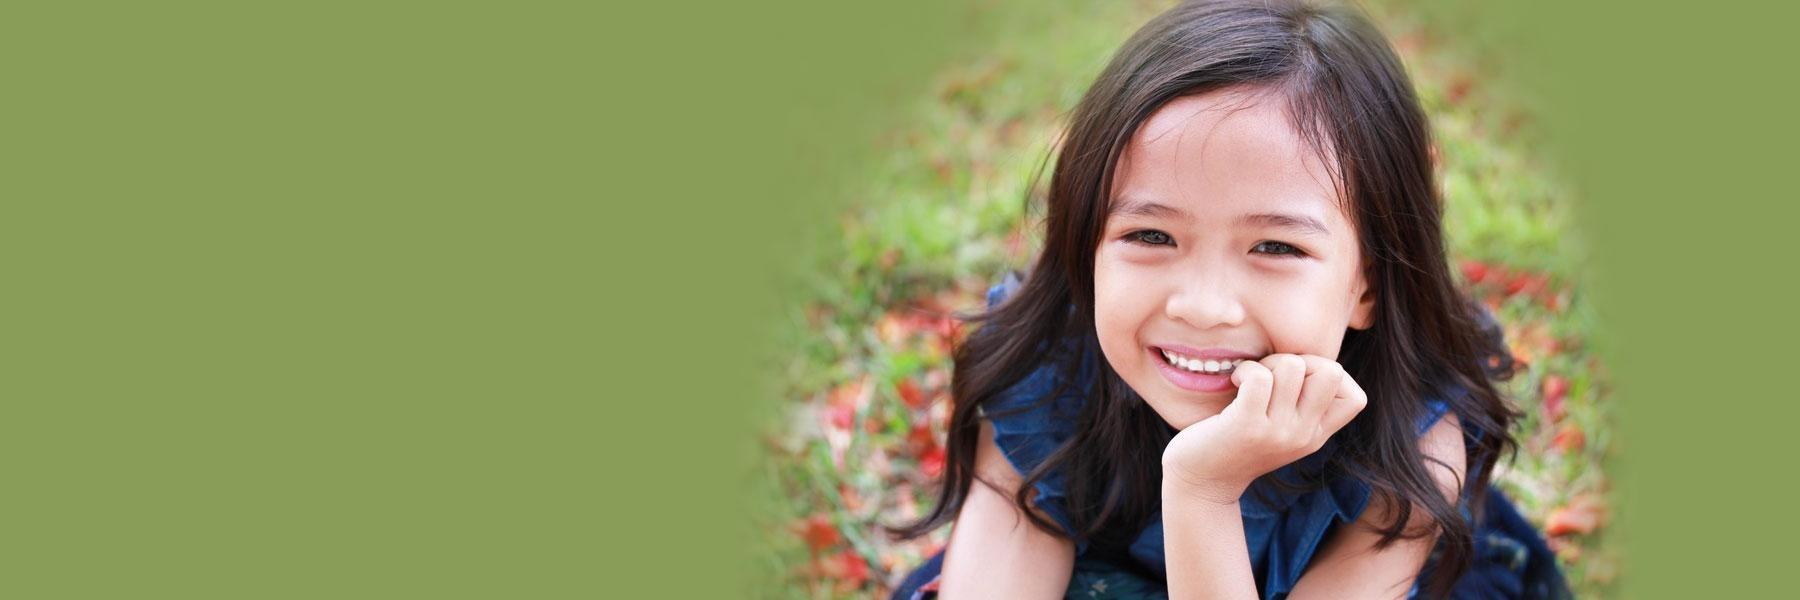 young girl smiling outside | pediatric dentistry wilmington de